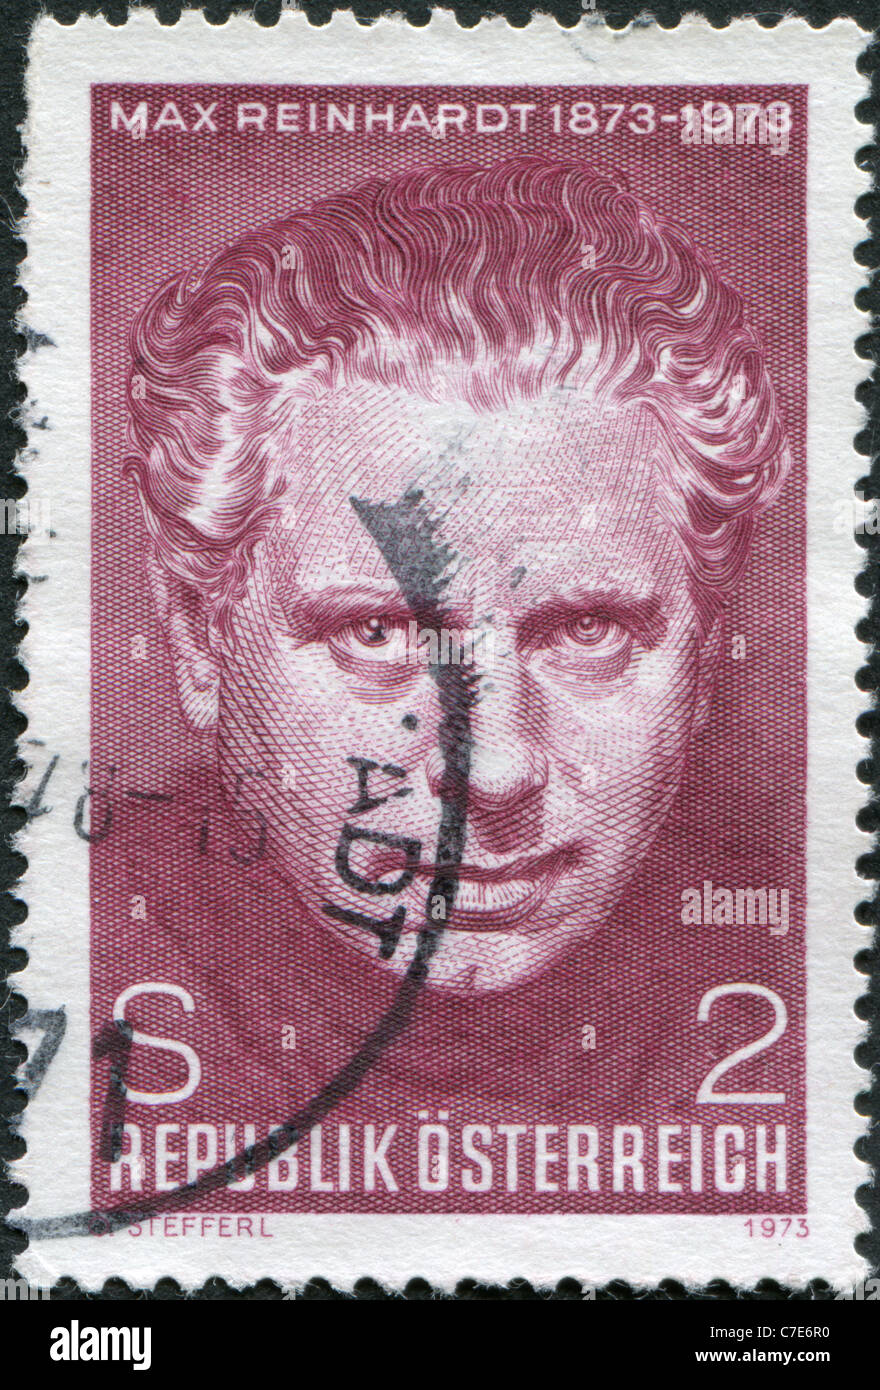 A stamp printed in Austria, is dedicated to the 100th anniversary of Max Reinhardt, Theatrical Director - Stock Image